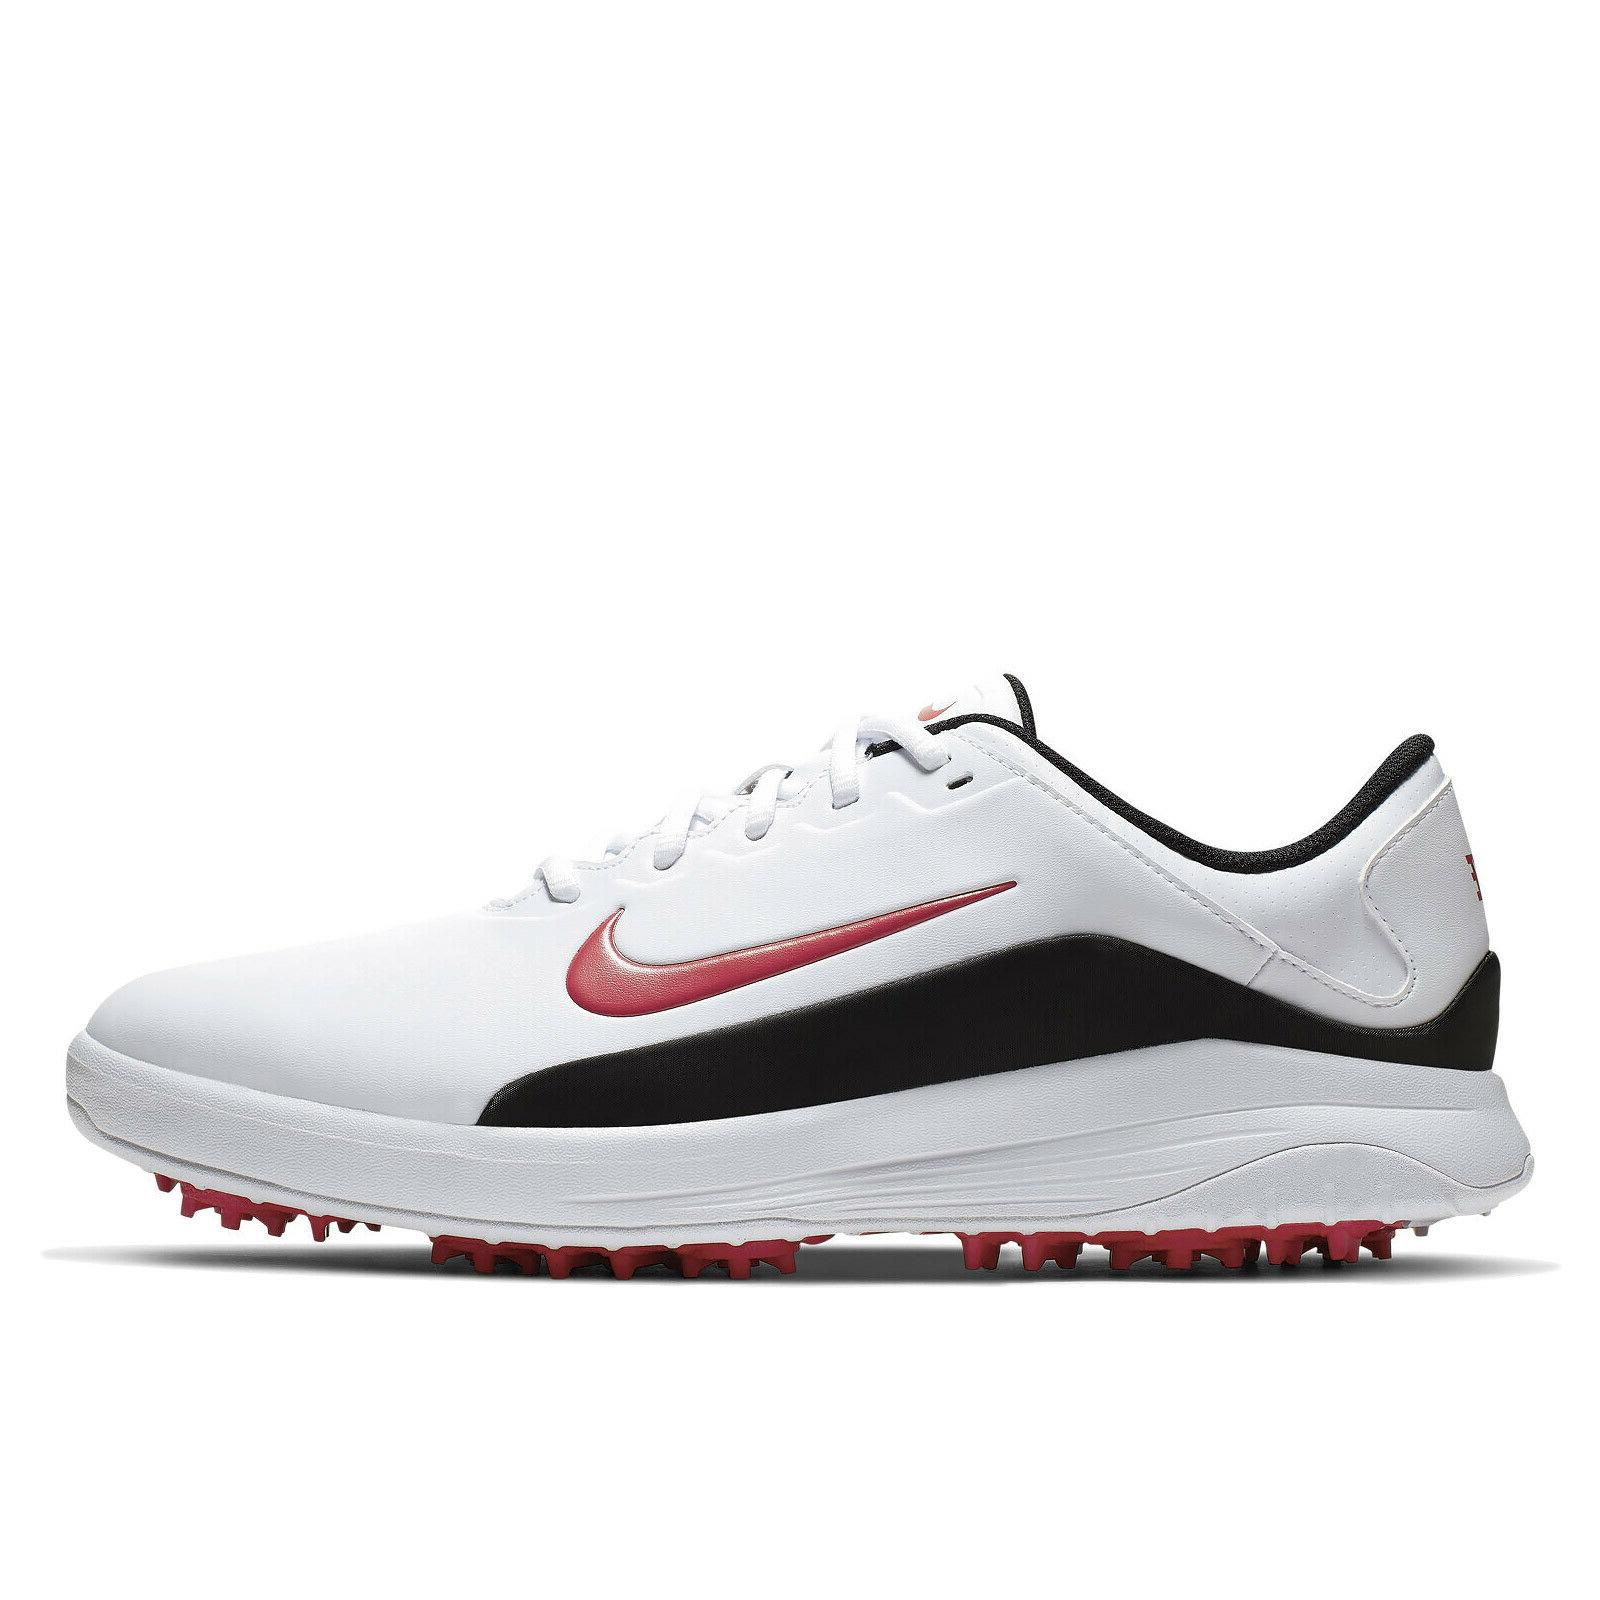 NIKE GOLF Golfing Shoes Cleats - White Black - SIZE